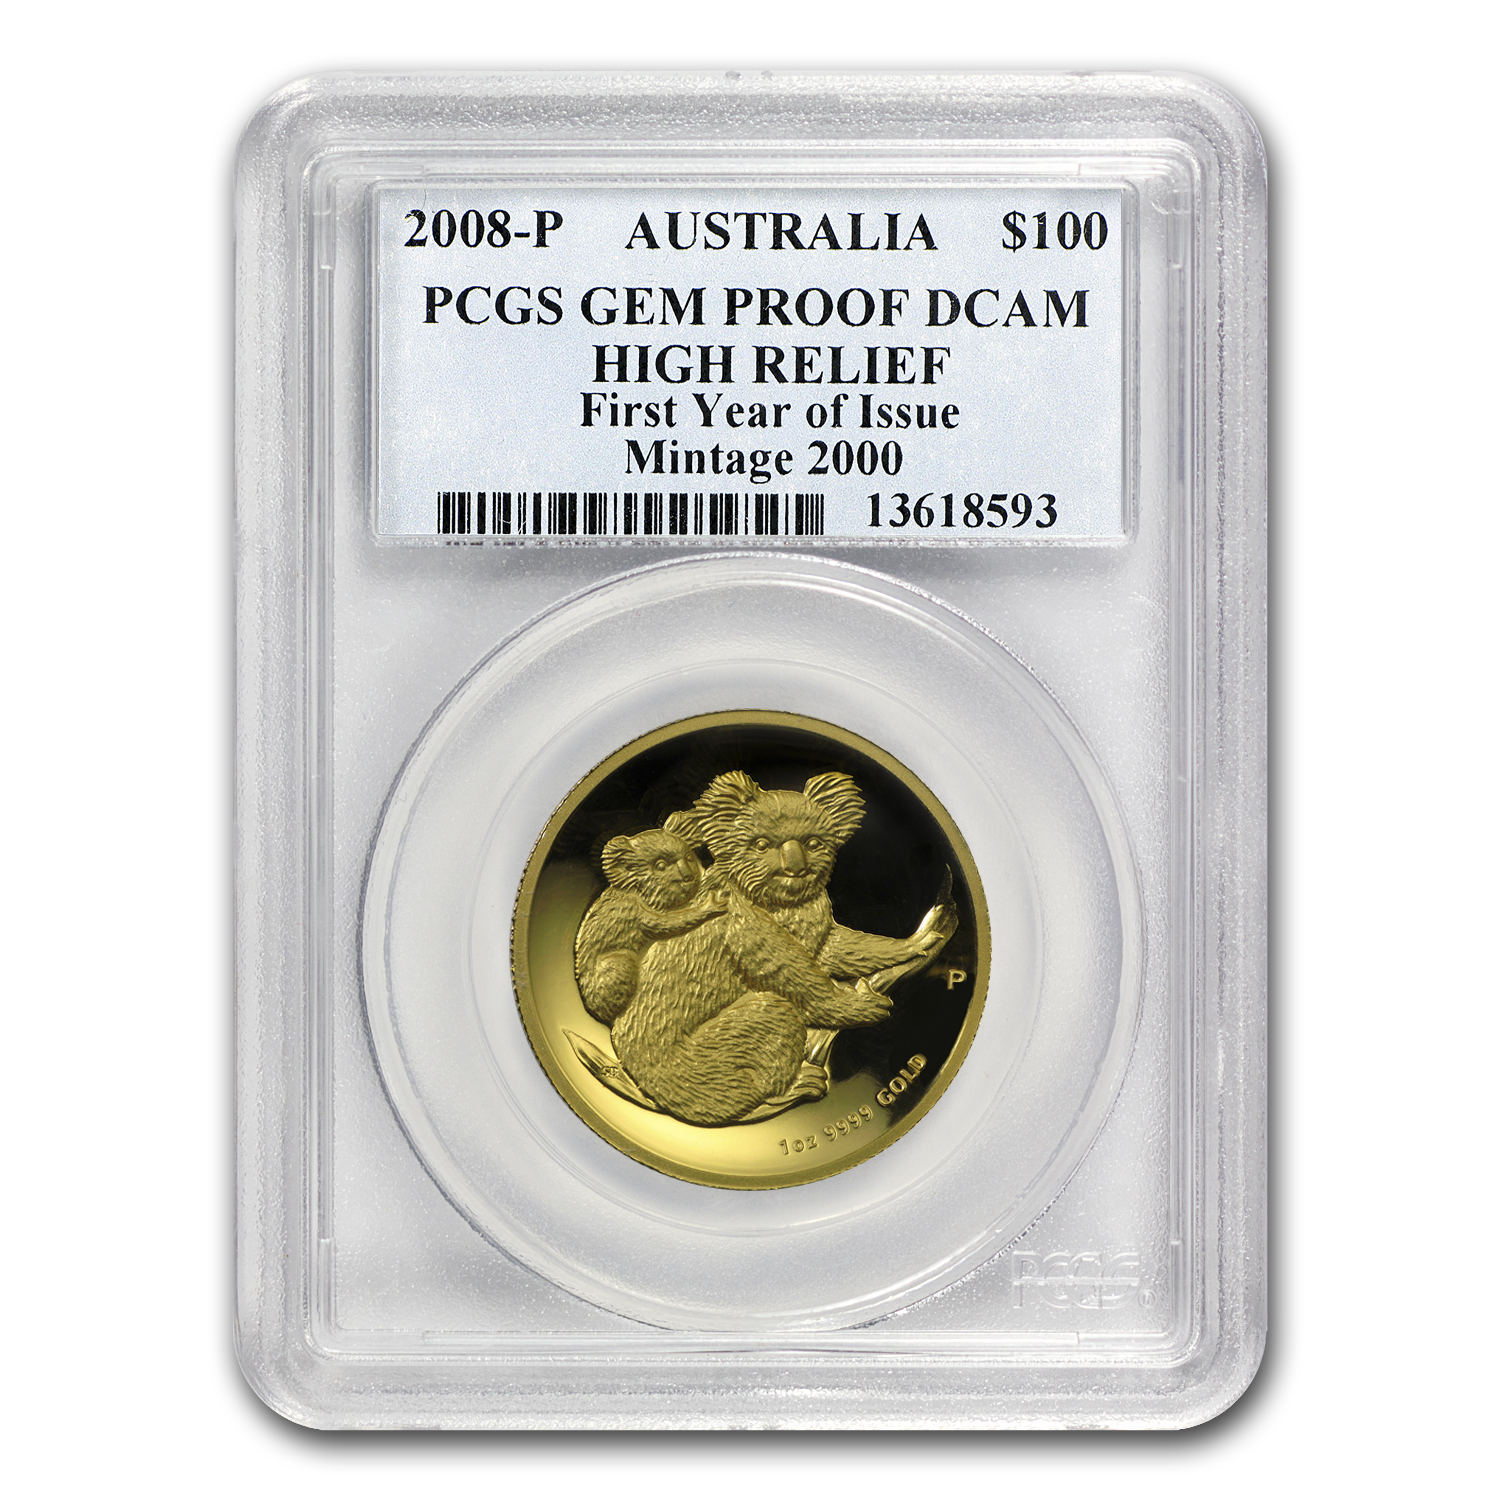 2008-P 1 oz Australian Gold Koala Gem Prf PCGS (High Relief)